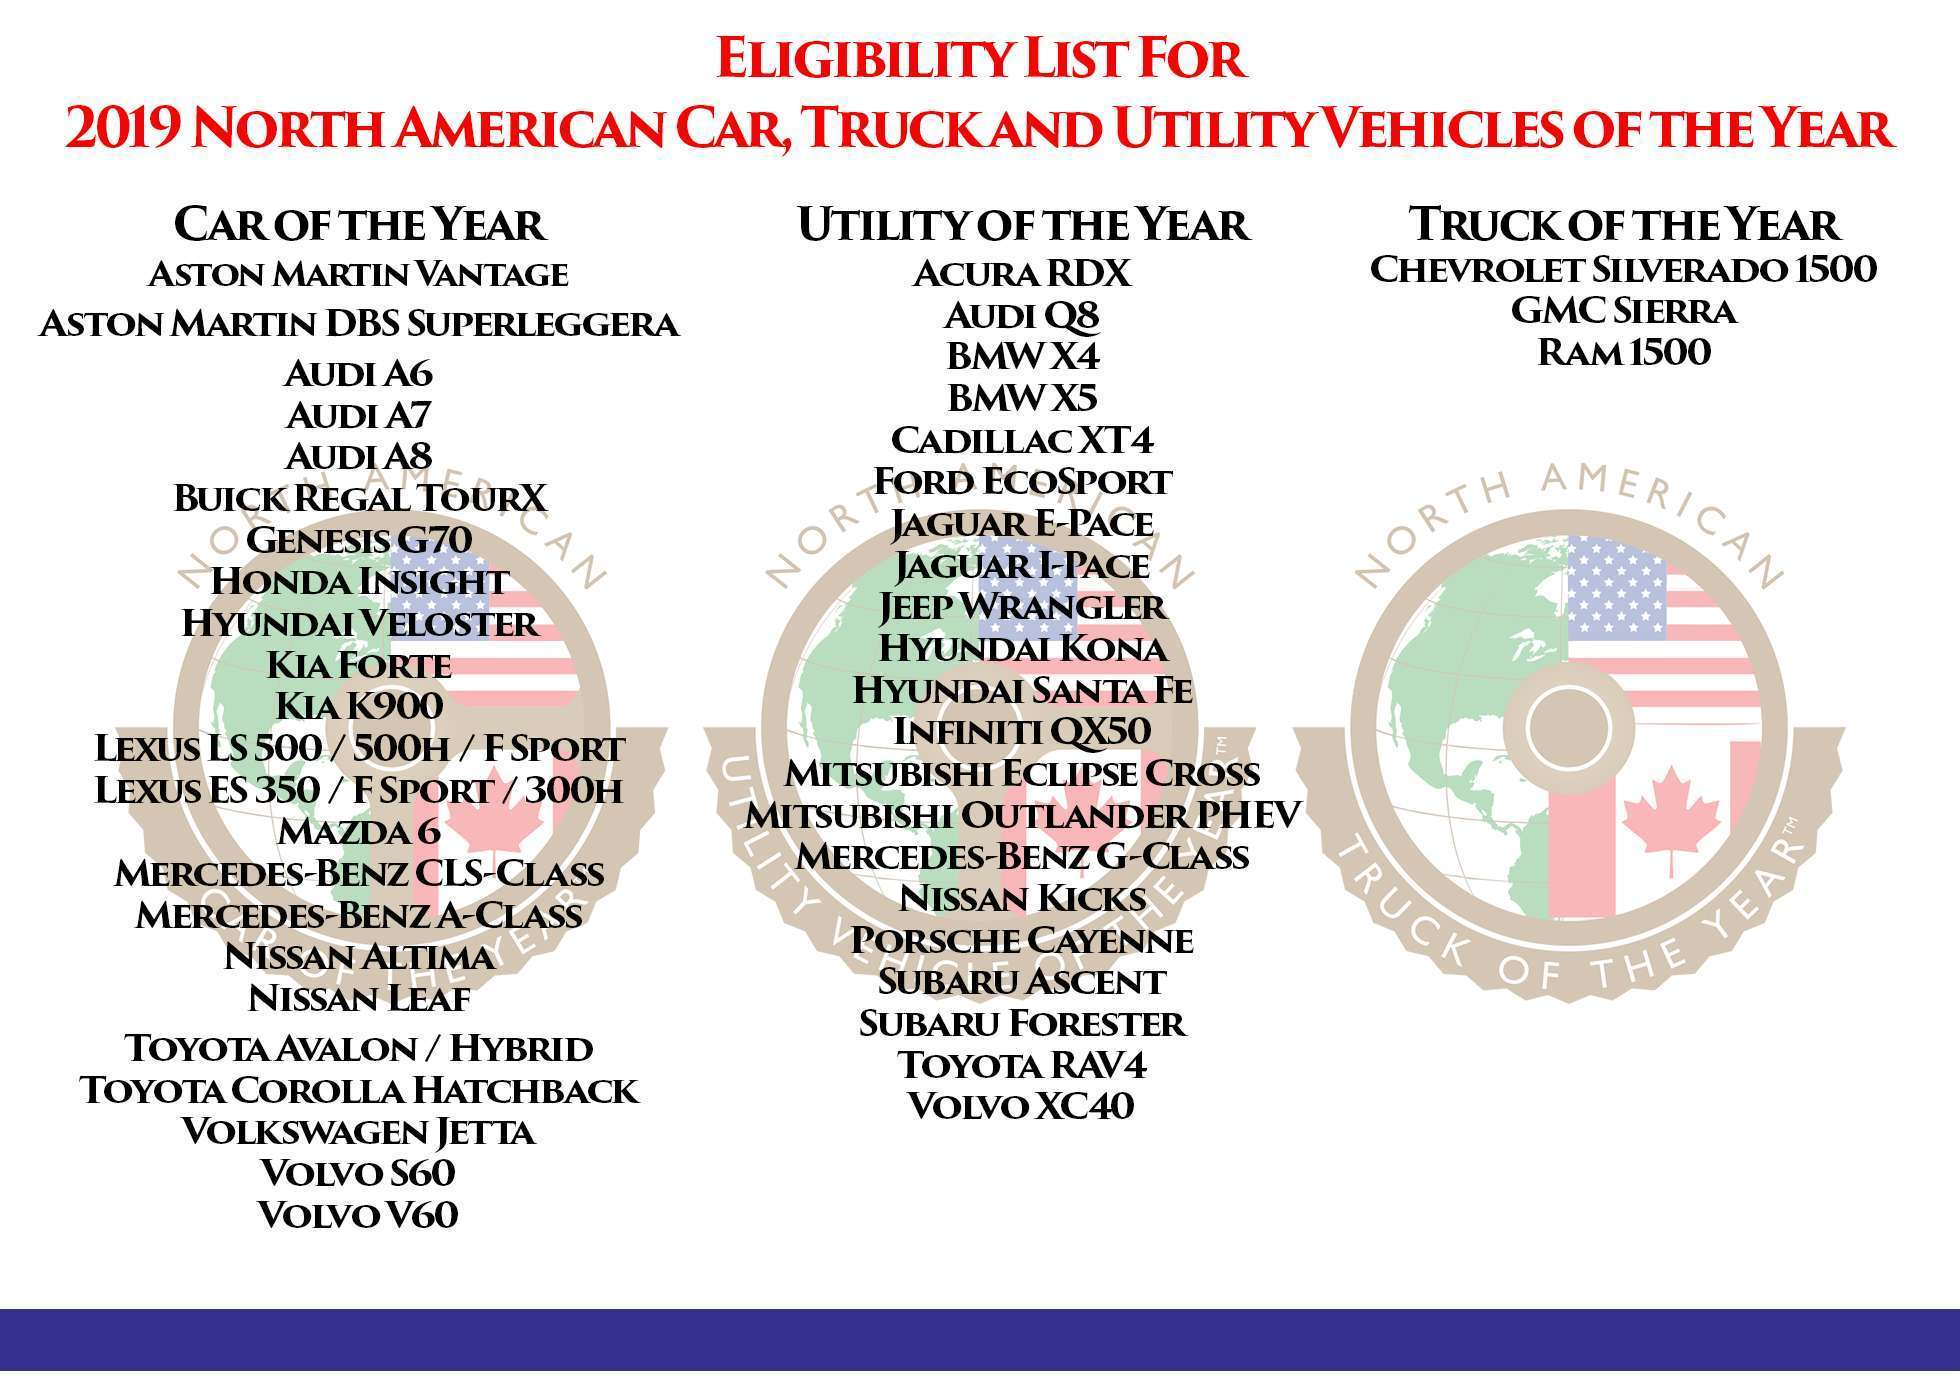 2019 North American Car, Truck and Utility Vehicles of the Year Eligibility  List - North American Car and Truck of the Year